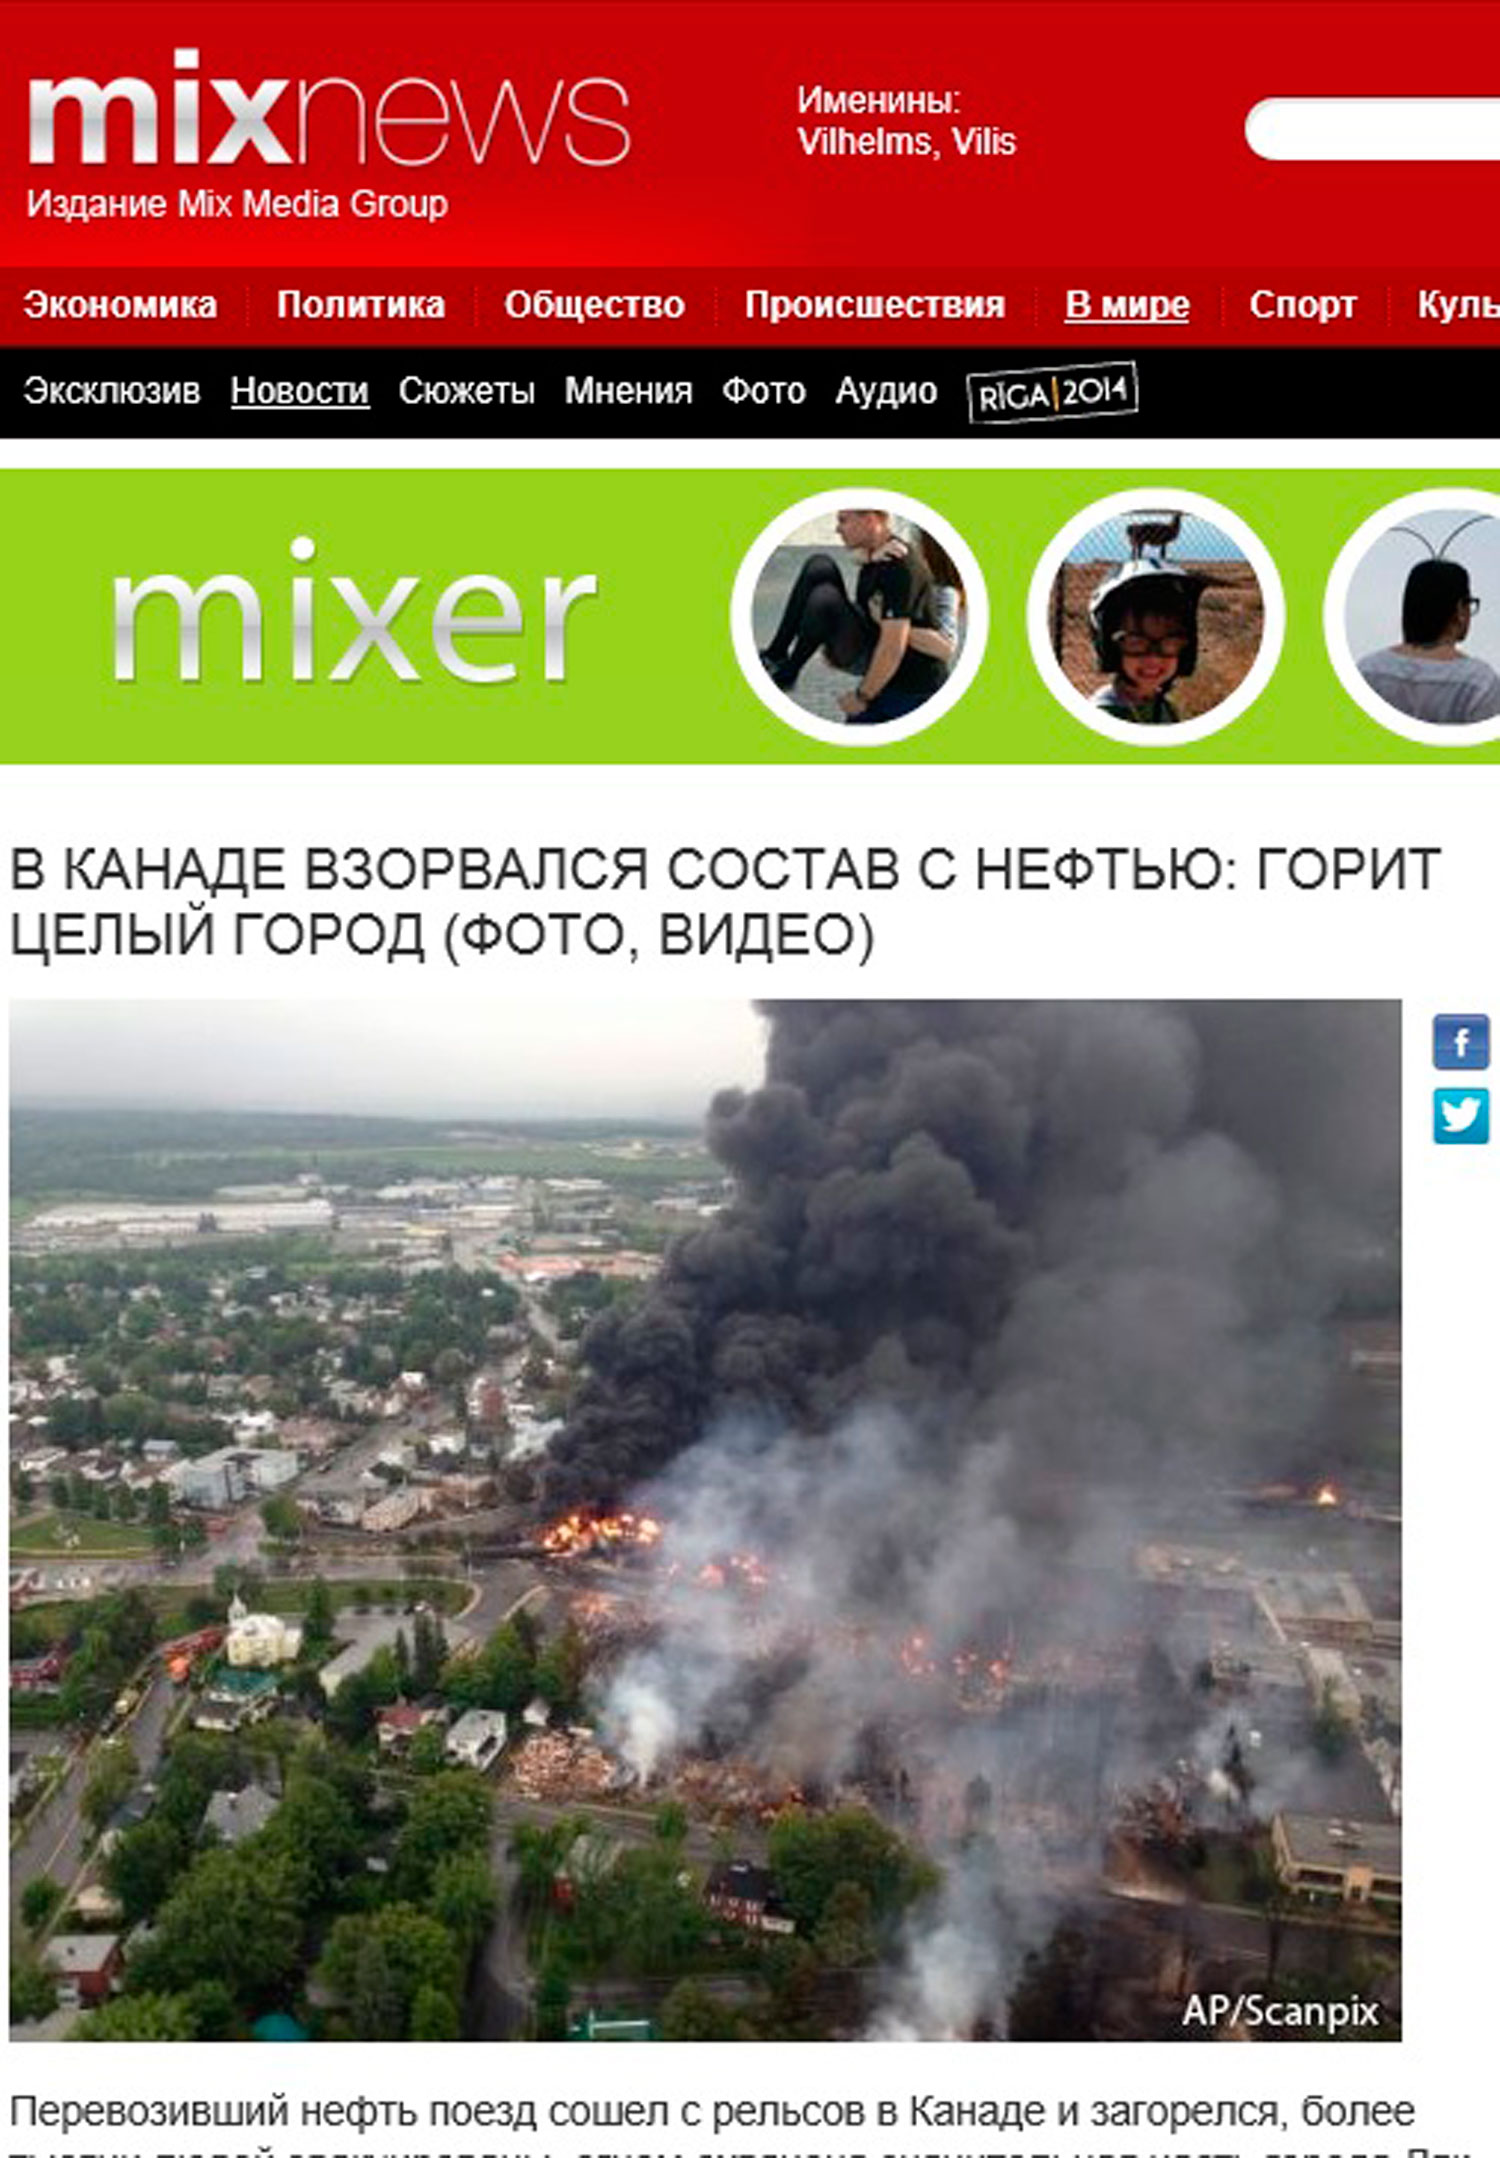 This picture published on Mix News allegedly shows the city of Sloviansk, Ukraine after a bombardment by the Ukrainian Army.